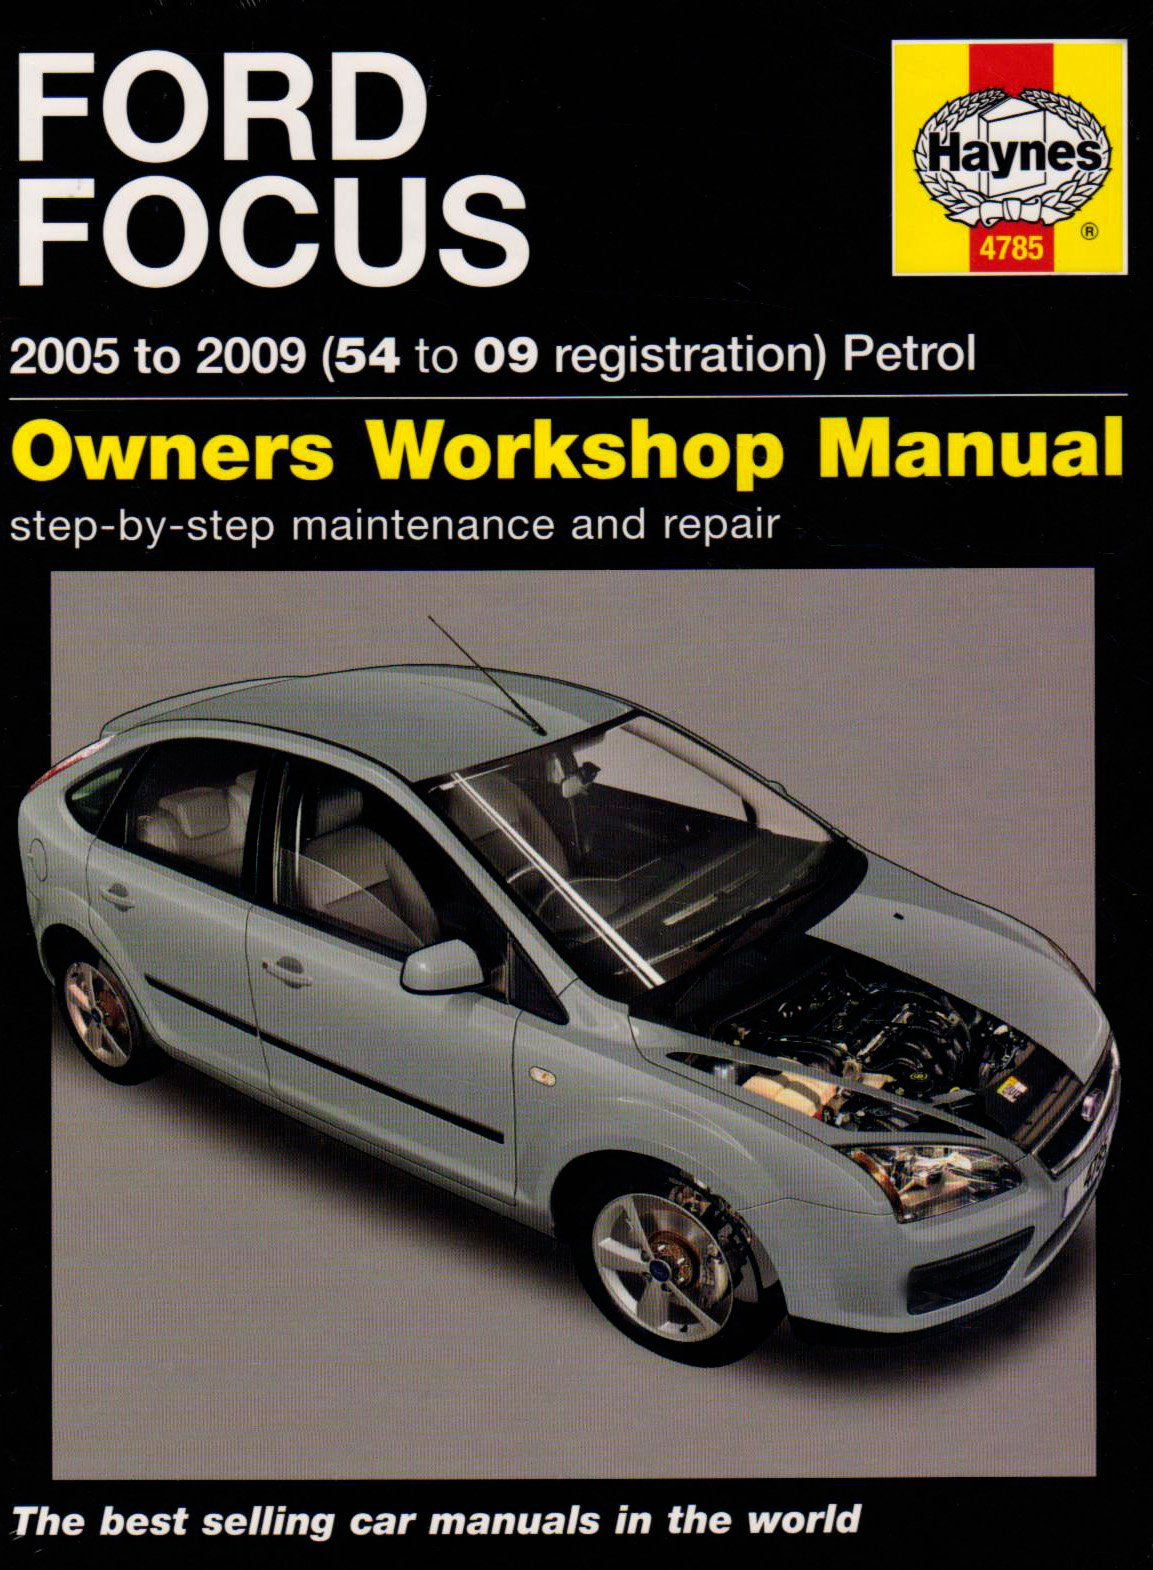 ford focus diesel service and repair manual 2005 to 2009 haynes rh amazon co uk 2001 Ford Focus Parts Diagram Ford Focus Motor Mount Replacement